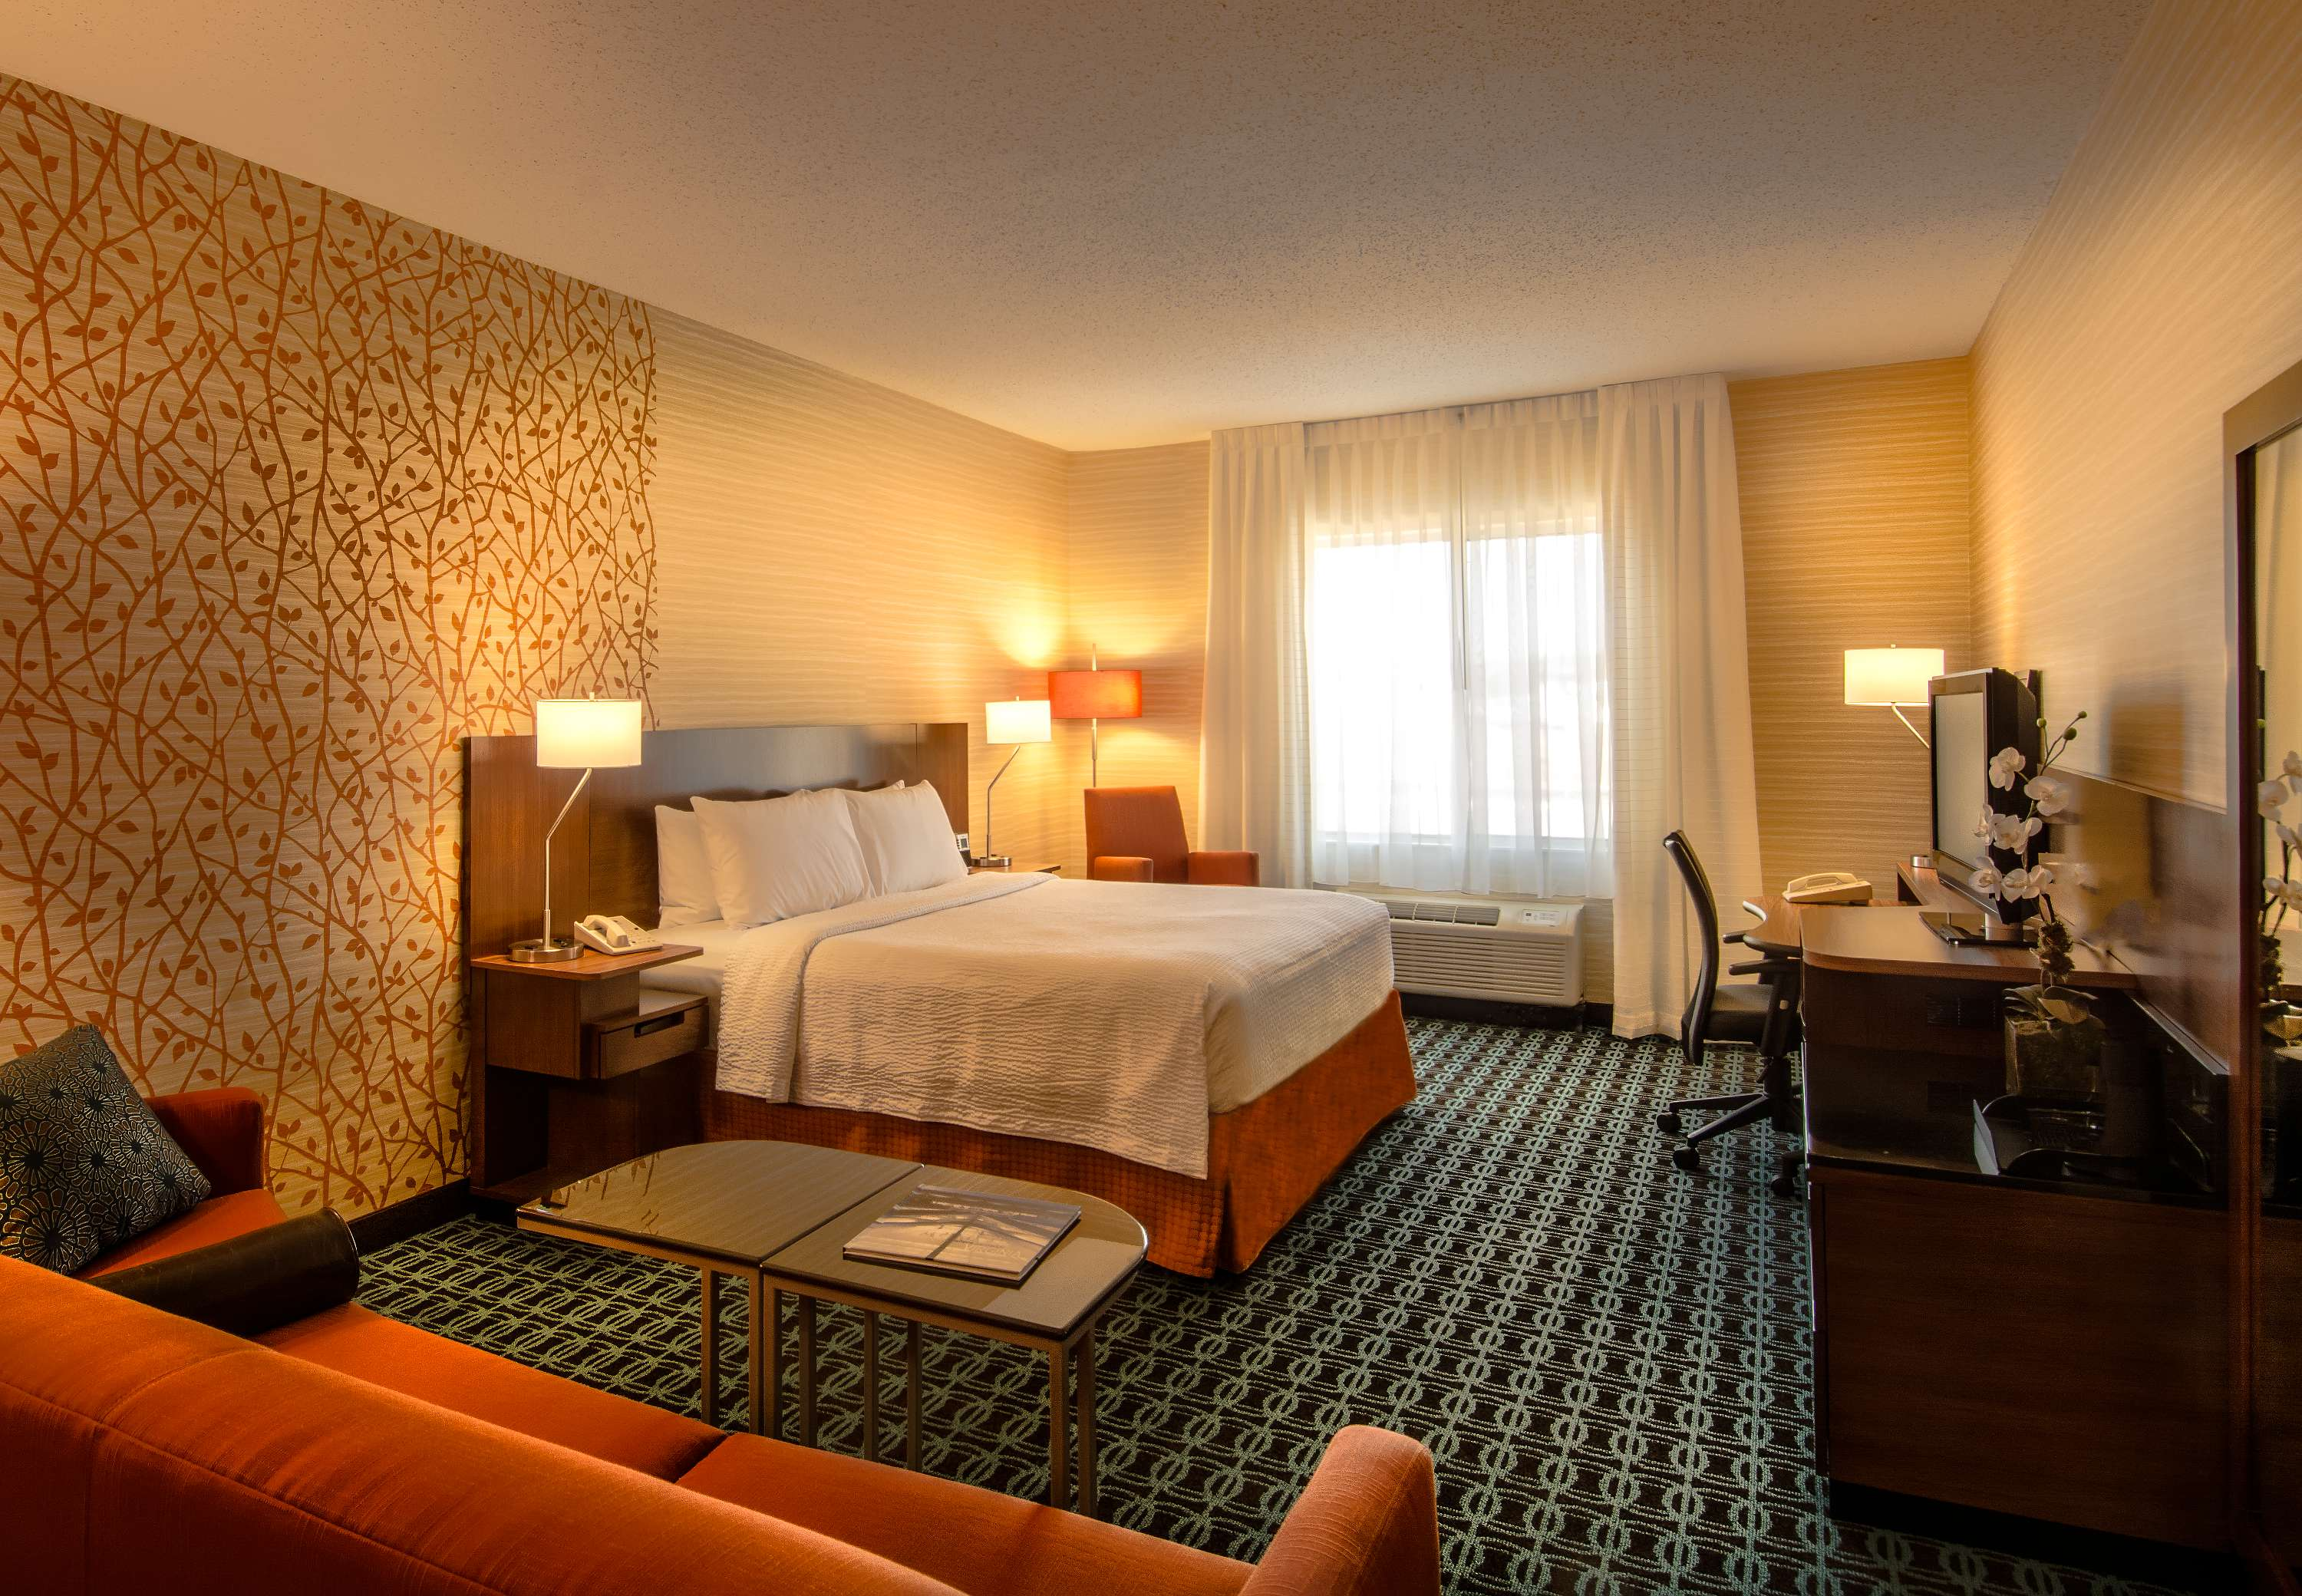 Fairfield Inn & Suites by Marriott at Dulles Airport image 2